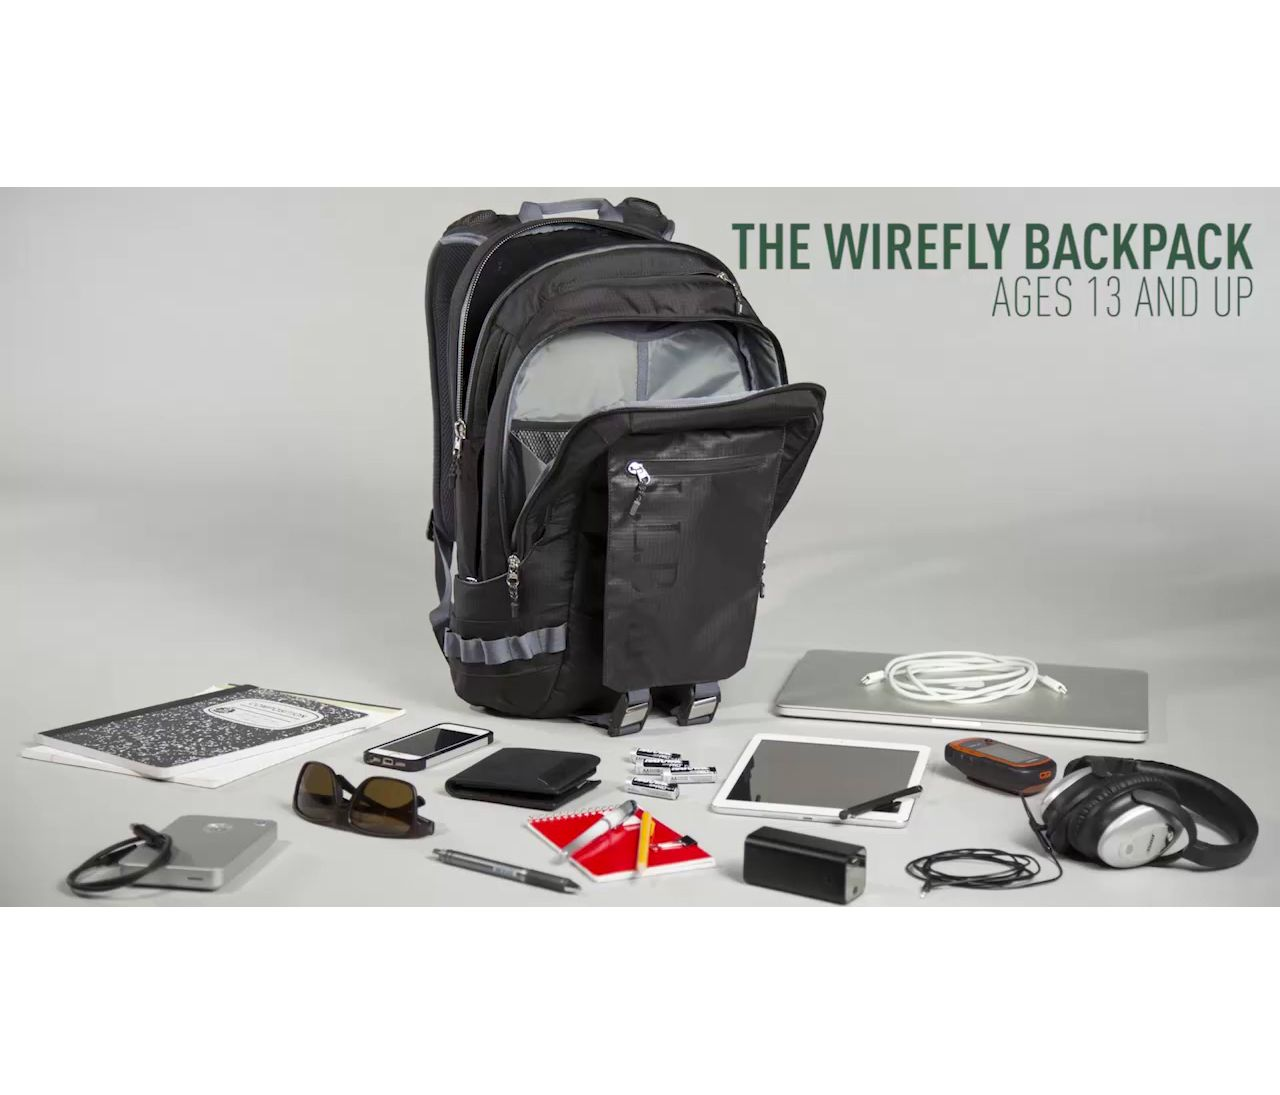 Video: Wirefly Pack